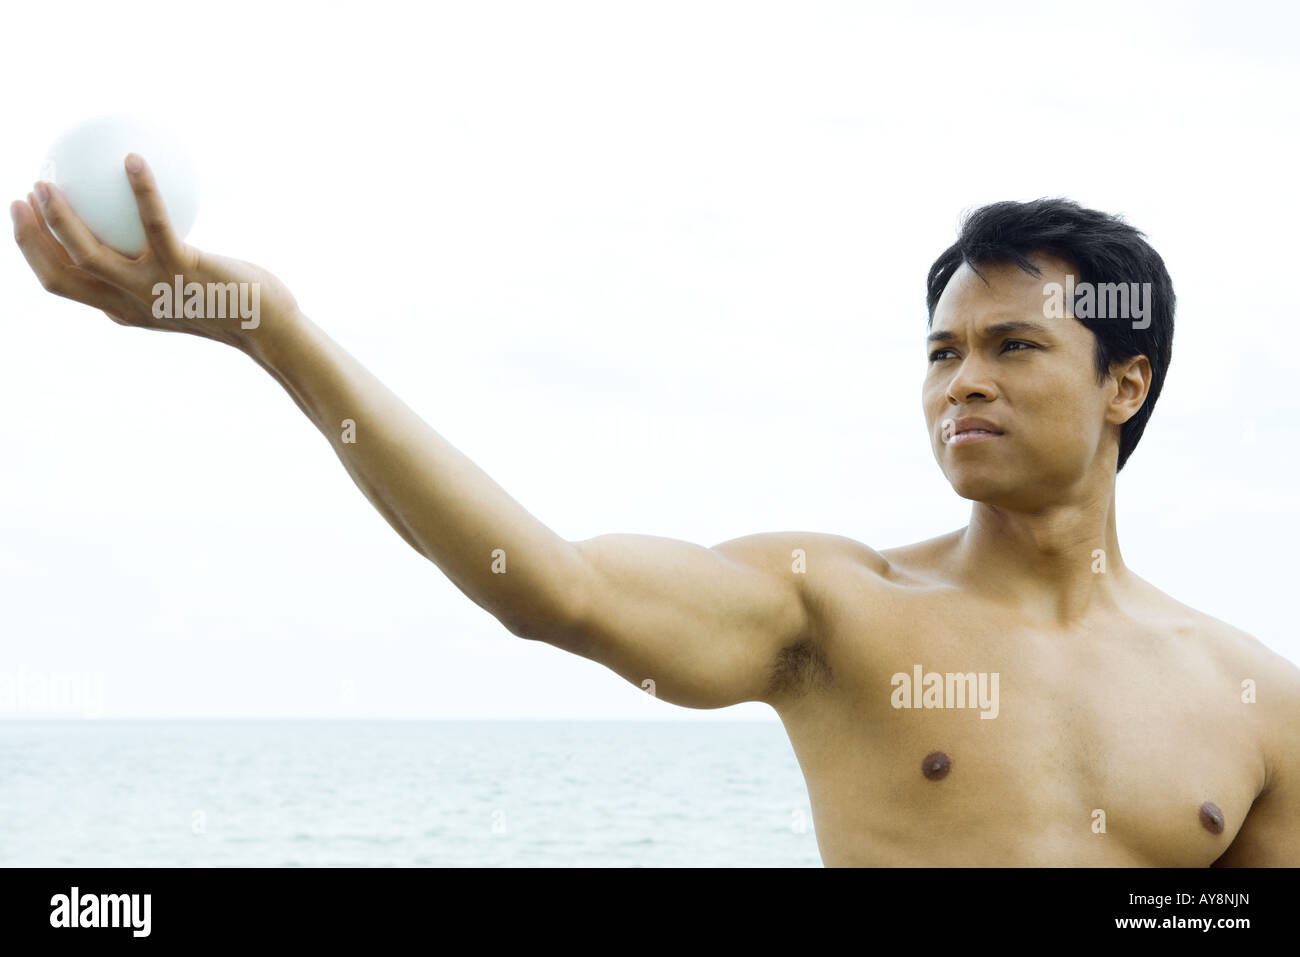 Man at the beach with arm raised, looking at ball in hand, close-up Stock Photo